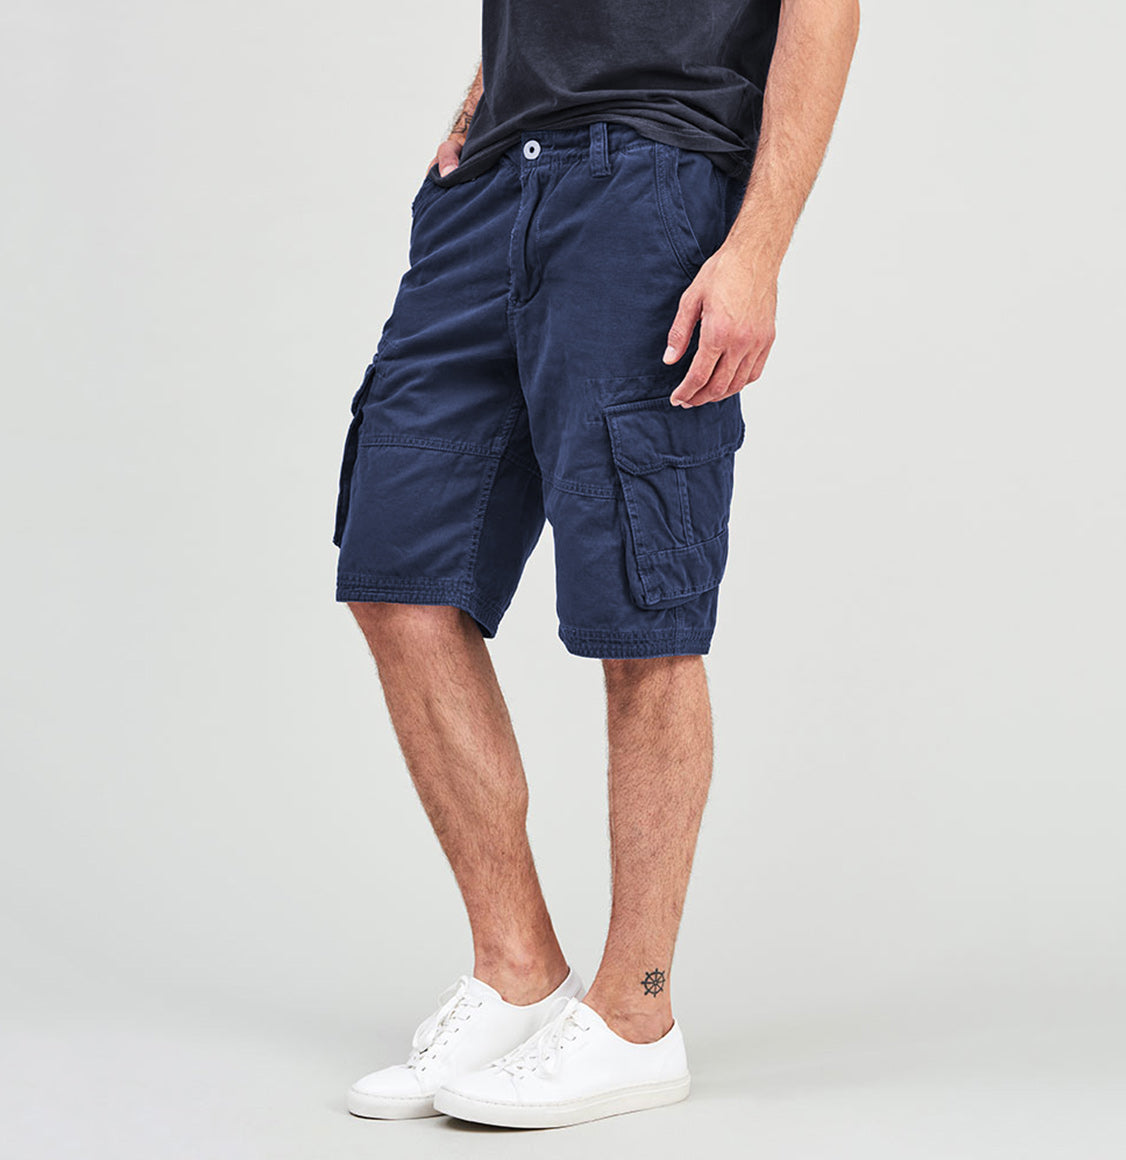 Cotton Cargo Distressed Shorts Blue | The Project Garments - C